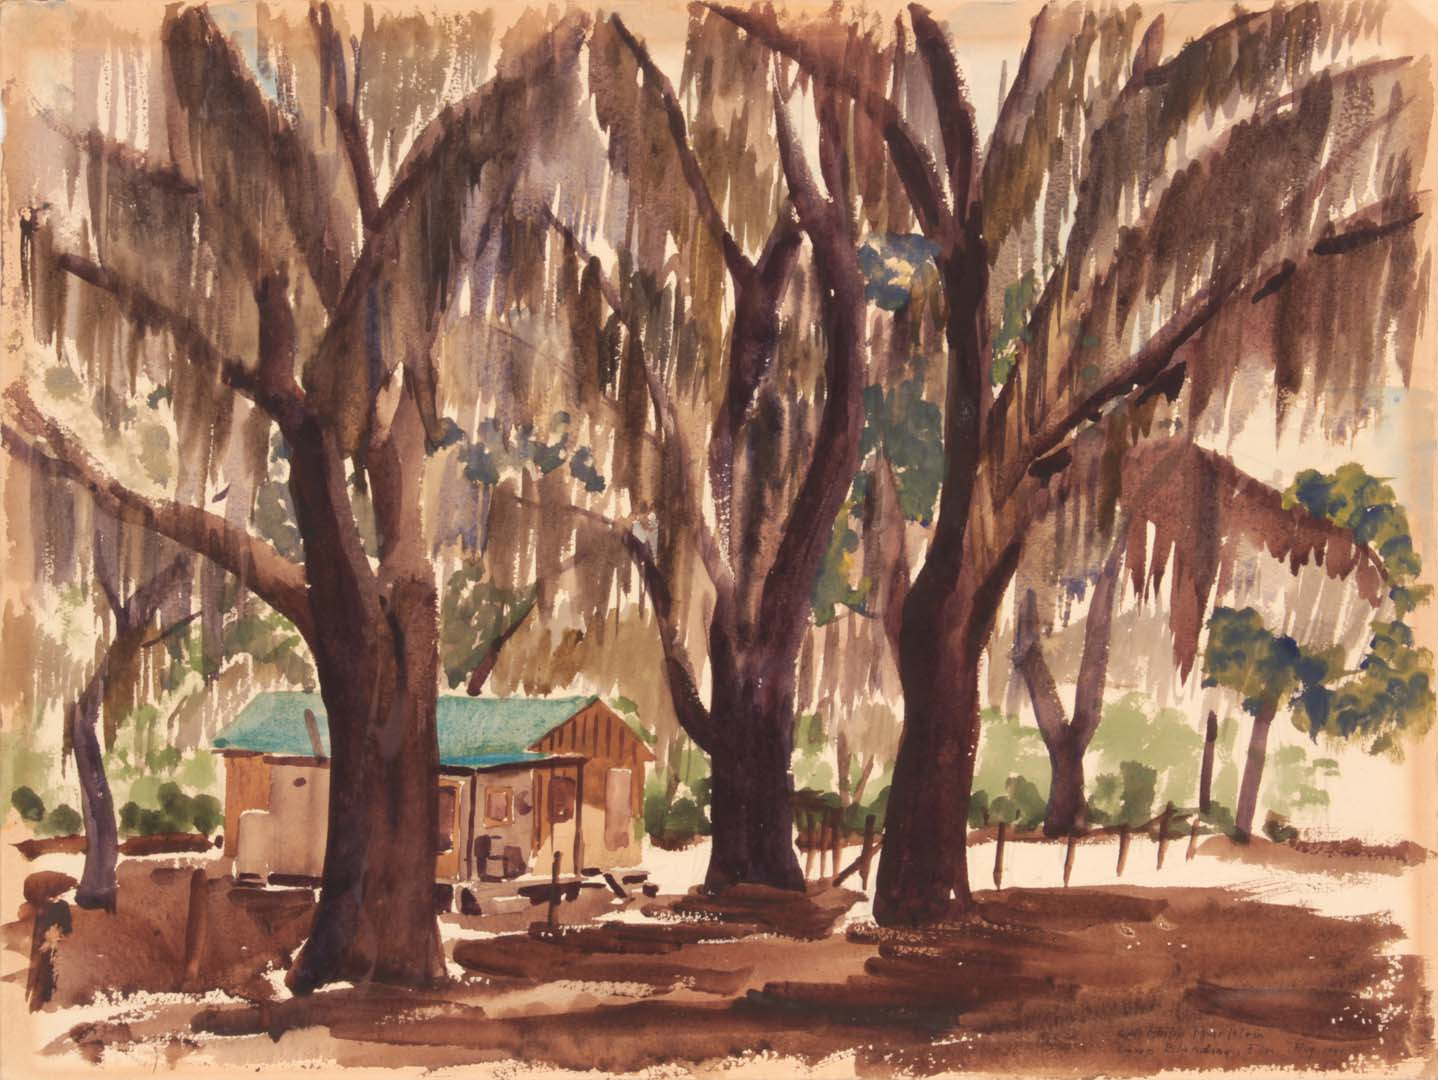 1944 Camp Blanding Florida Watercolor on Paper 12 x 16